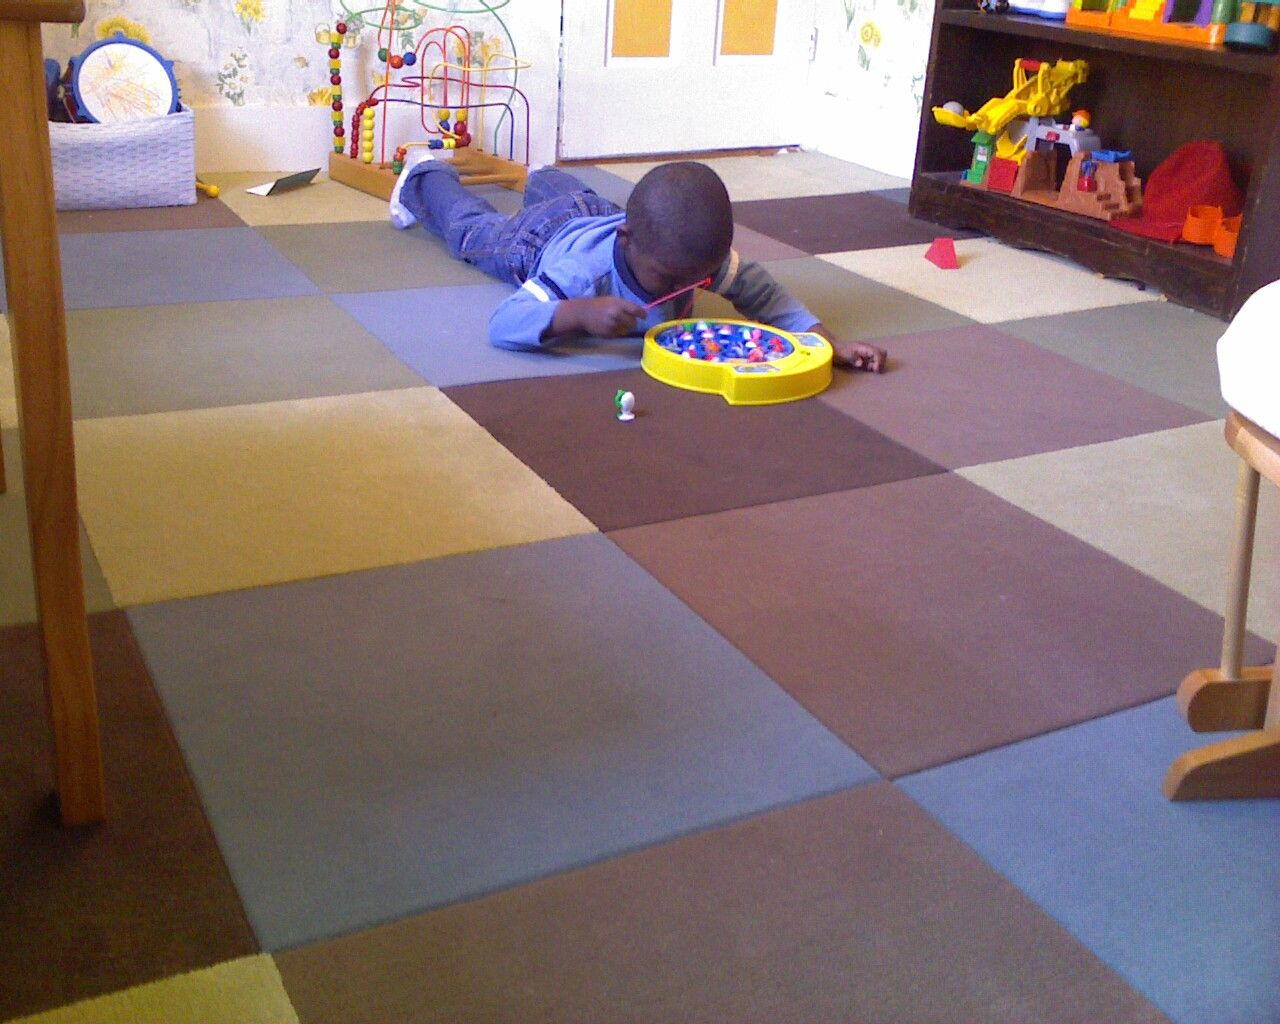 Muted Playroom Floor Playroom Flooring Kid Room Decor